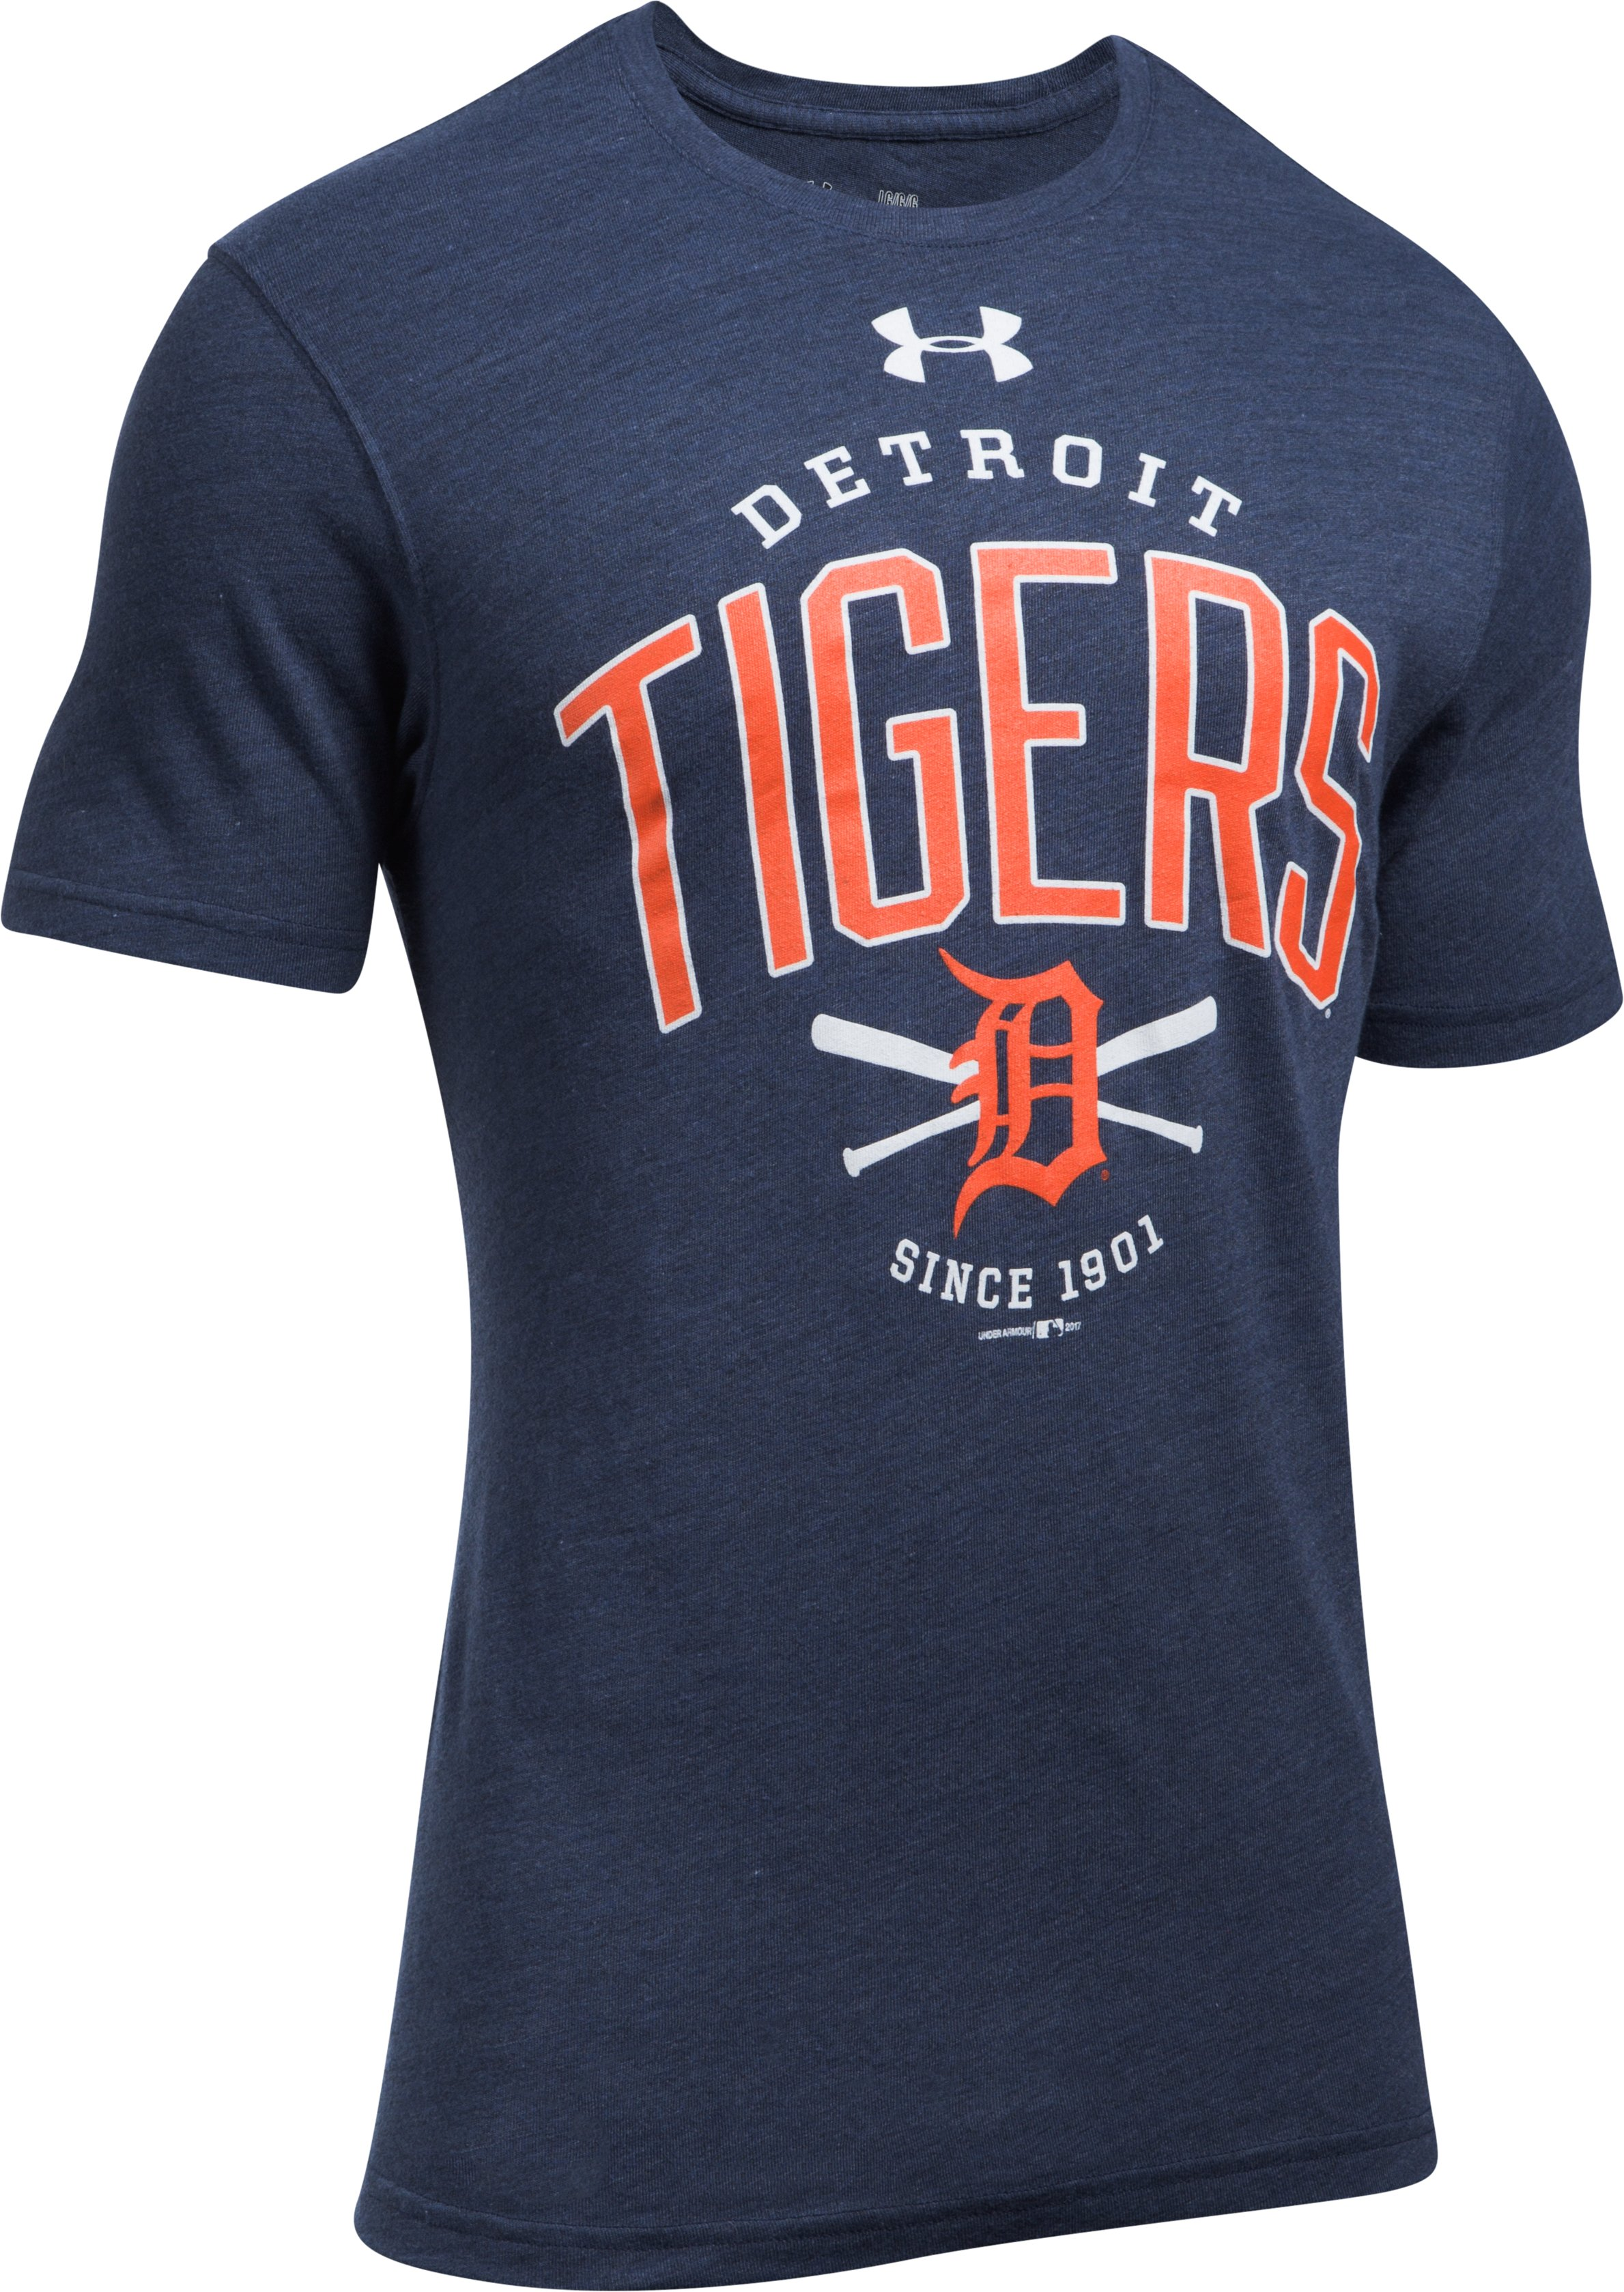 Men's Detroit Tigers Tri-Blend T-Shirt, Midnight Navy, undefined